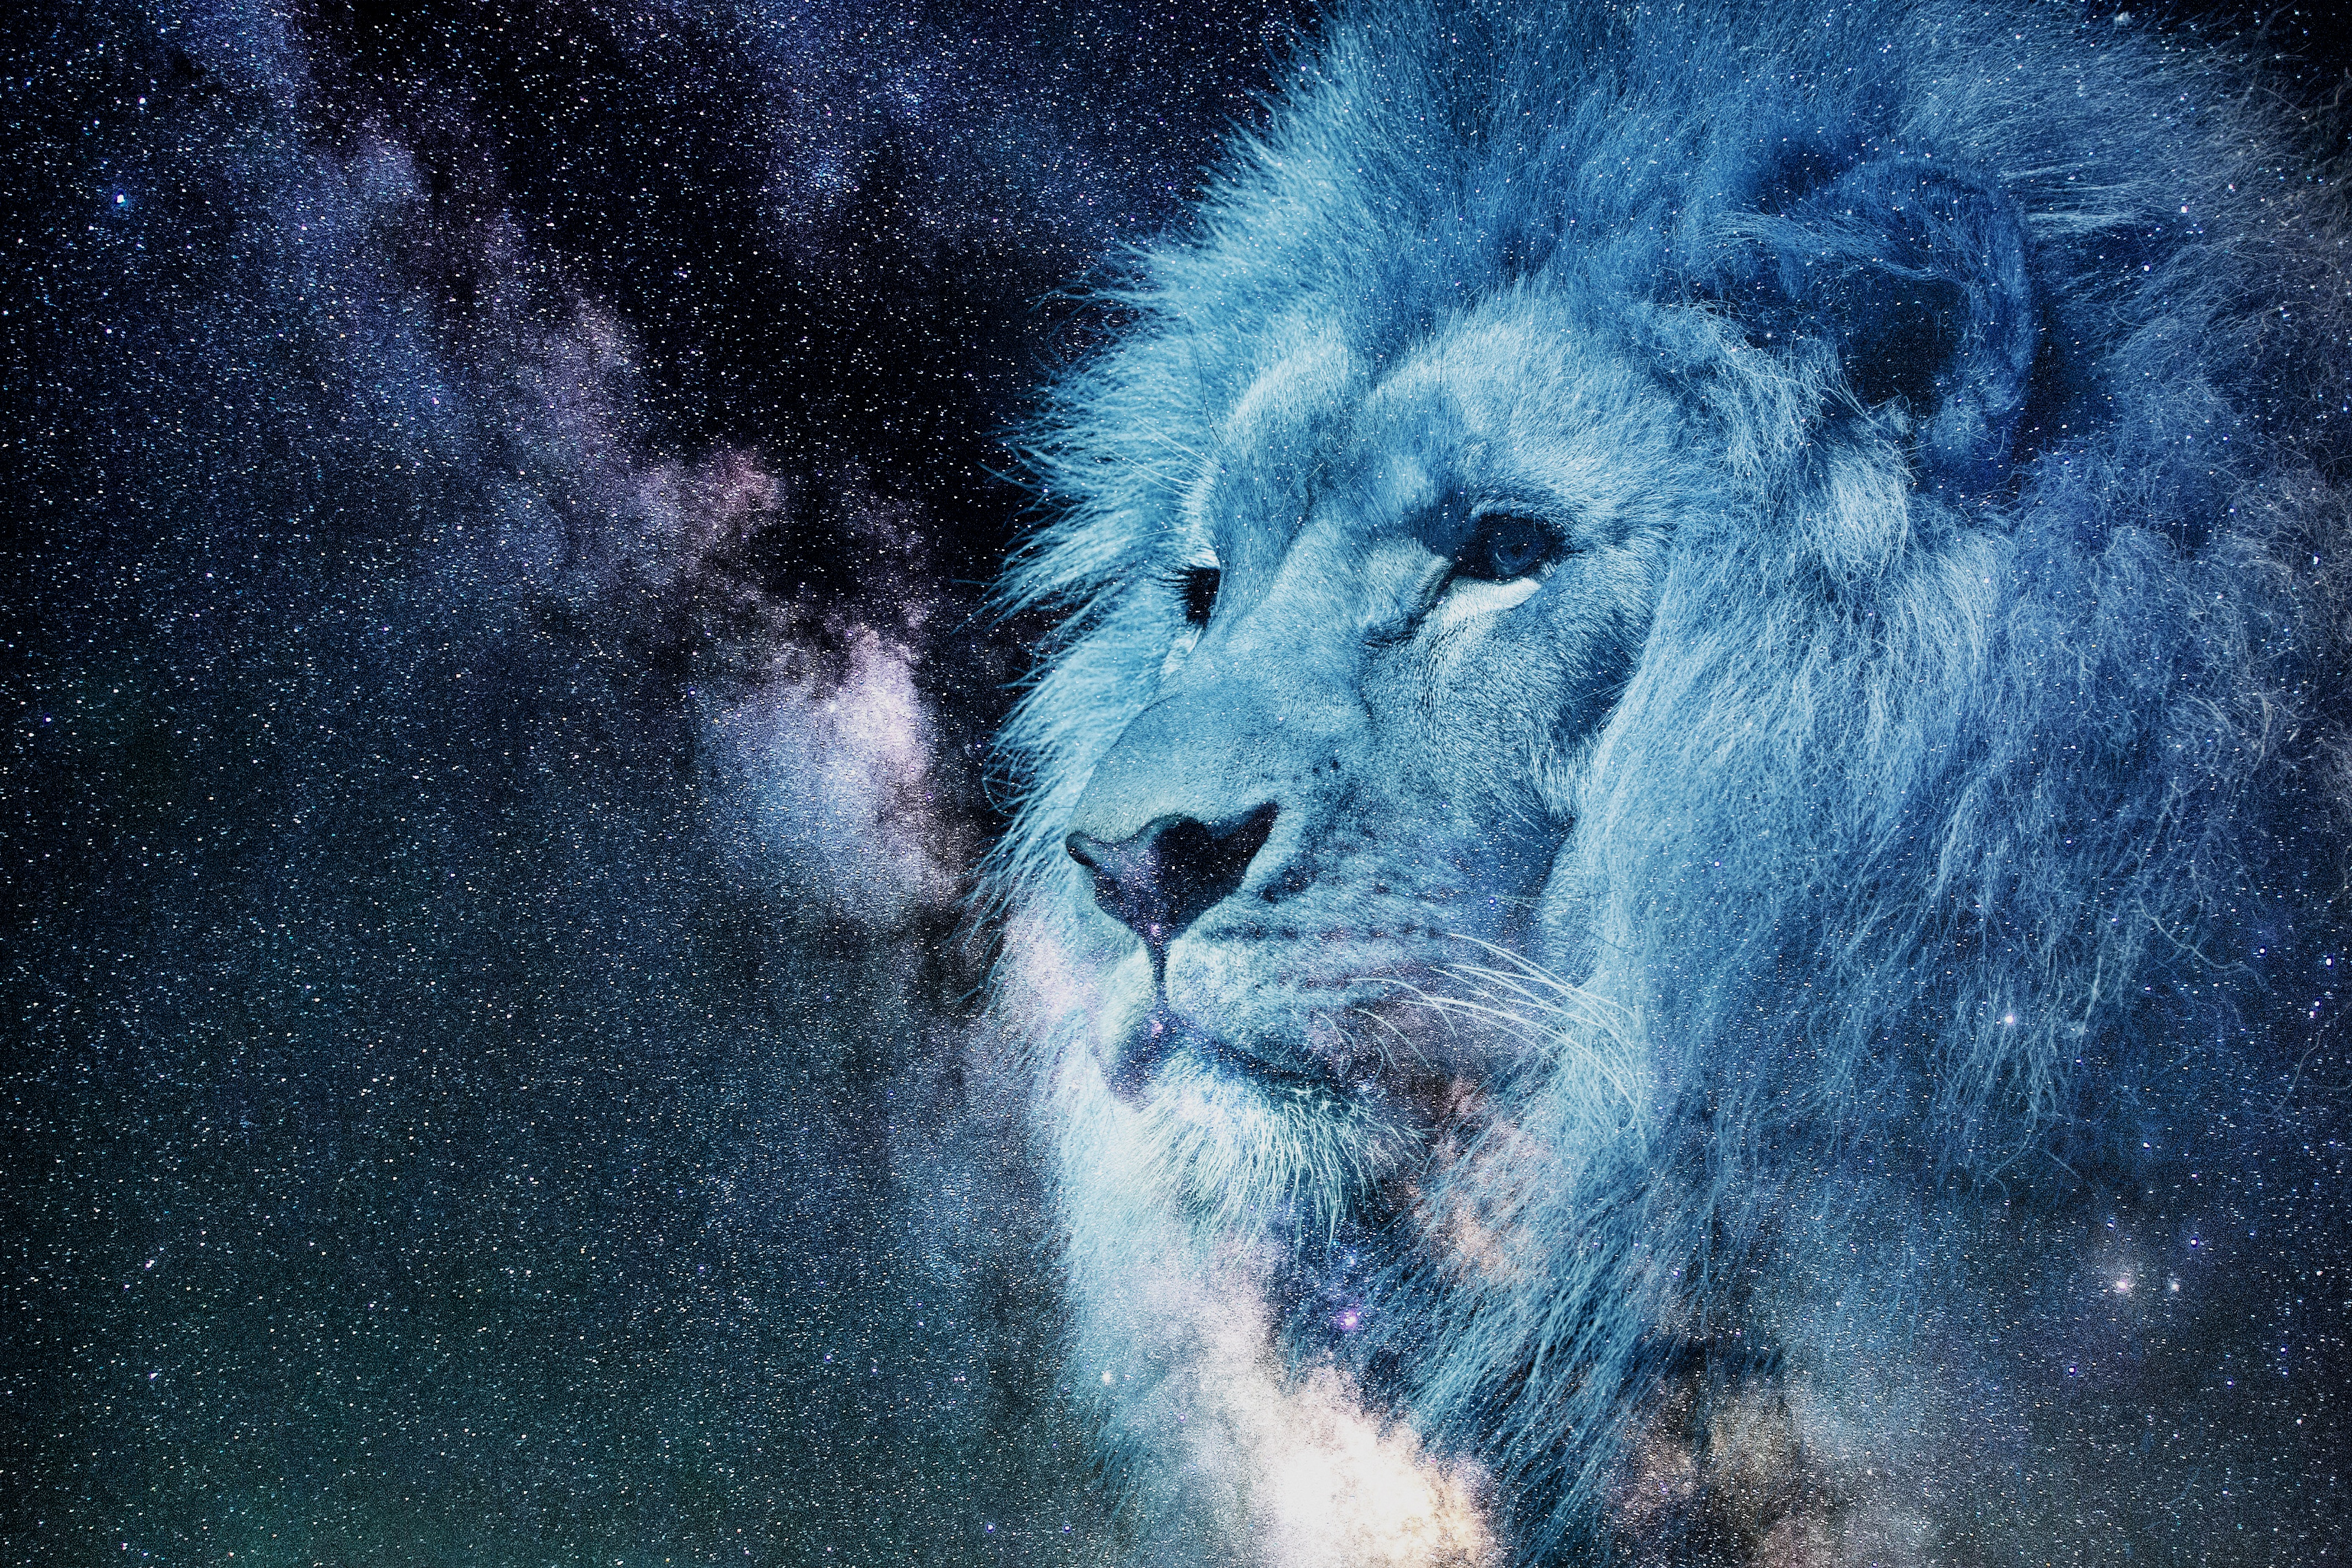 114409 download wallpaper Art, Stars, Muzzle, Starry Sky, Lion, Predator, Photoshop, King Of Beasts, King Of The Beasts screensavers and pictures for free